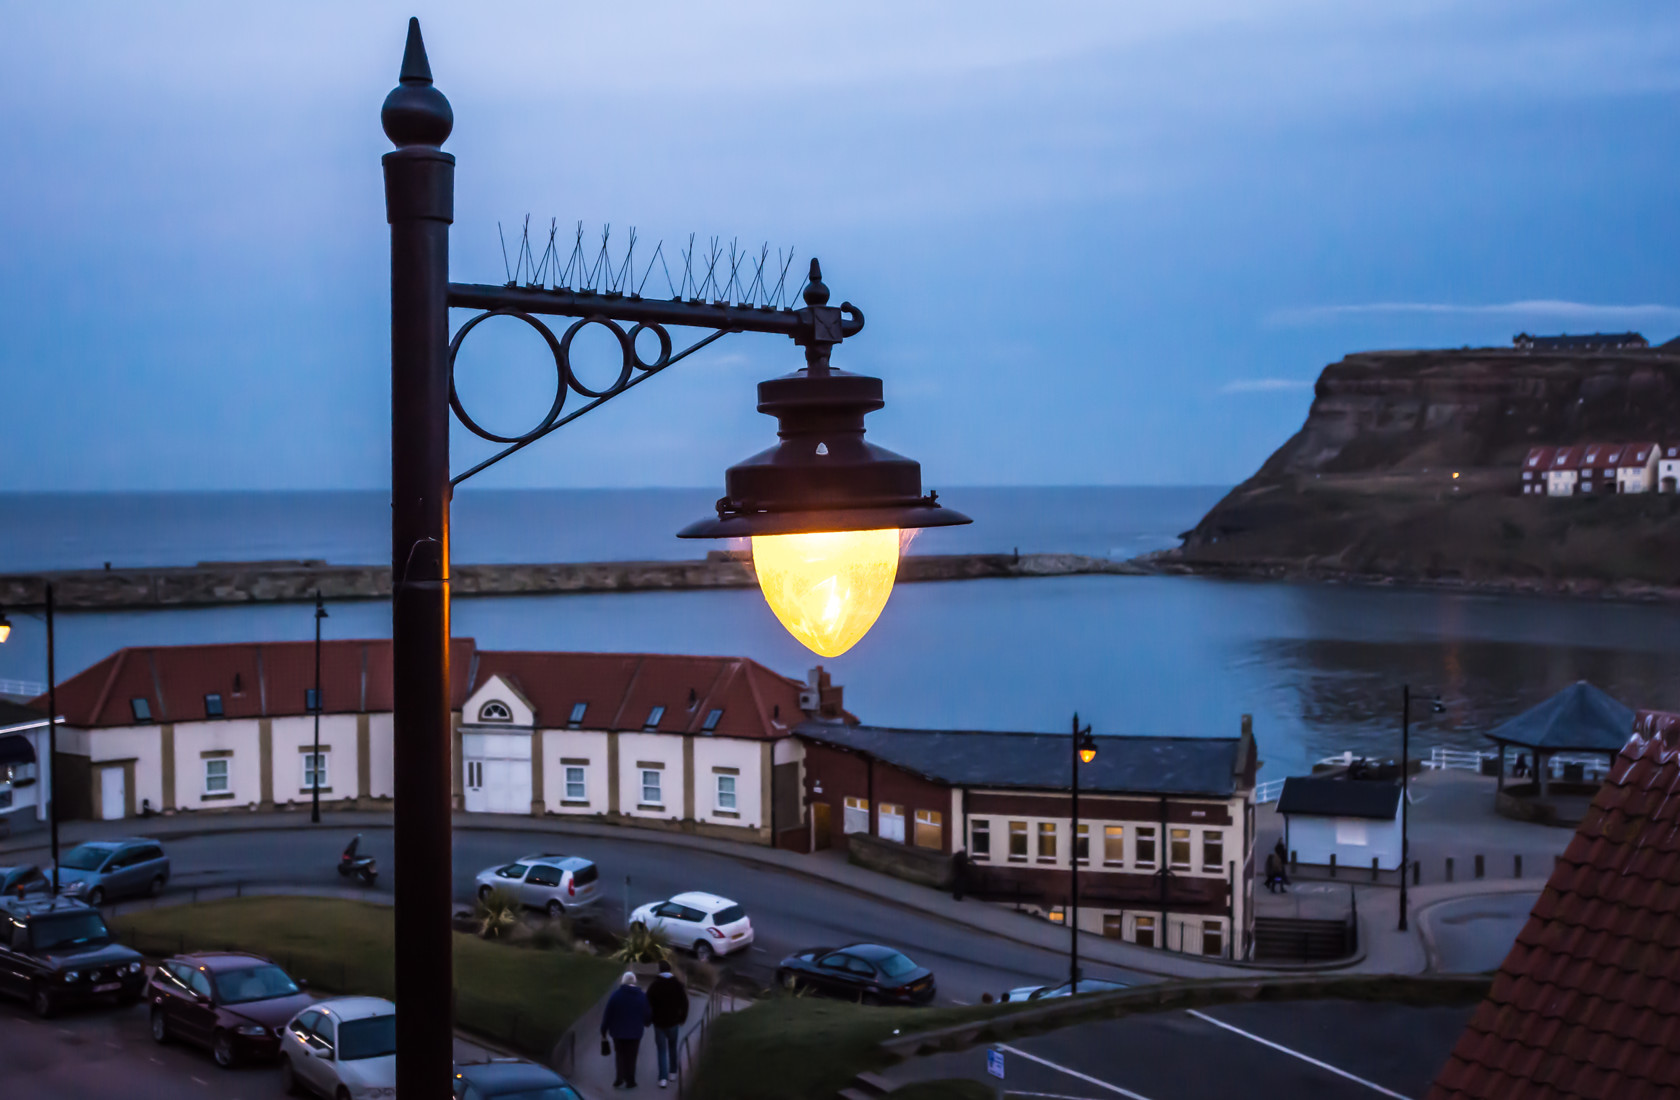 lighting the way, whitby (ref la 147)